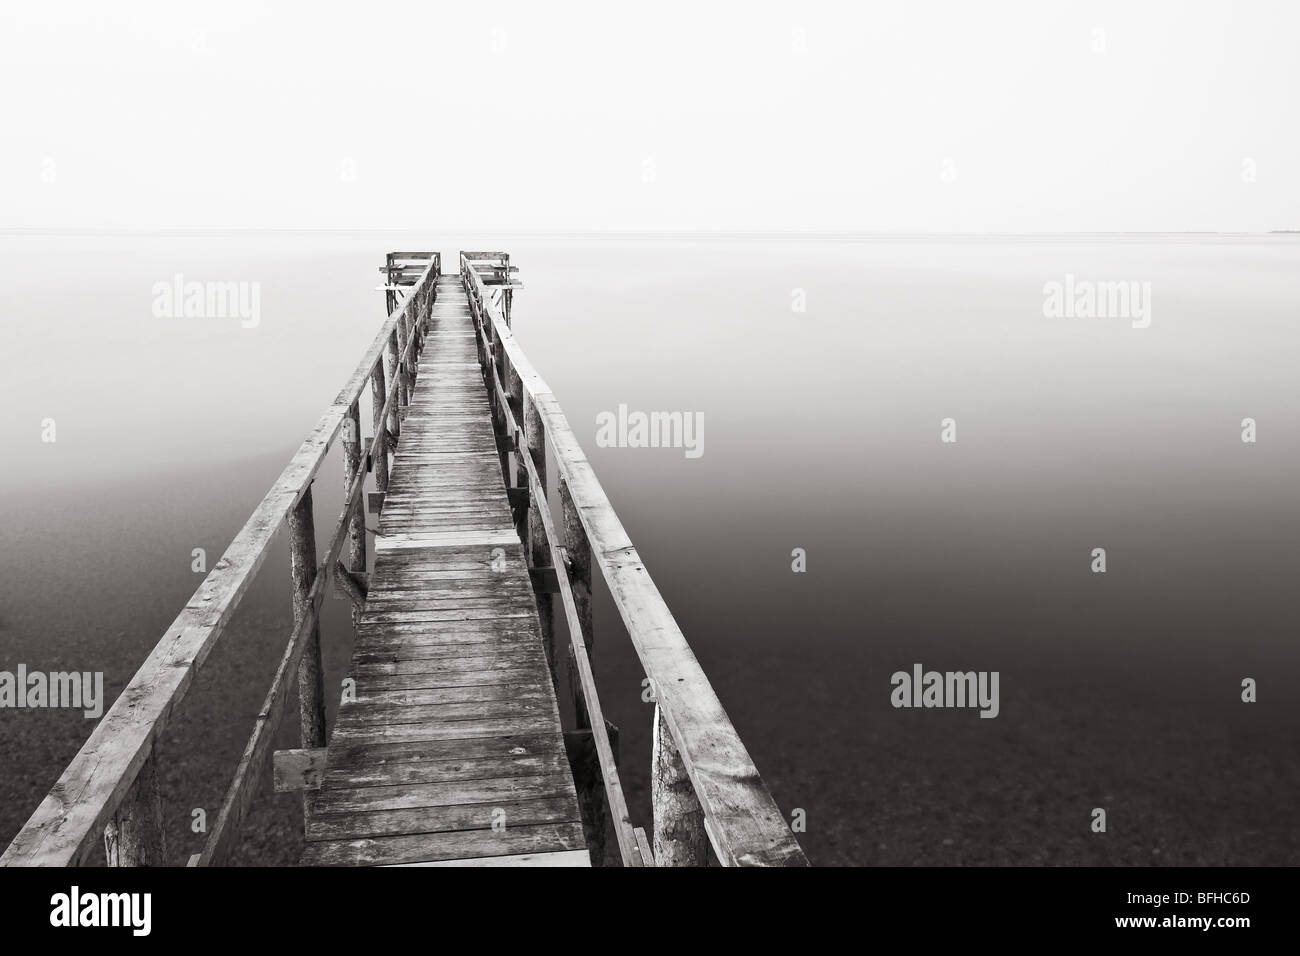 Wooden Pier on Lake Winnipeg.  Rebuilt every spring due to the Lake freezing solid.  Matlock, Manitoba, Canada. - Stock Image